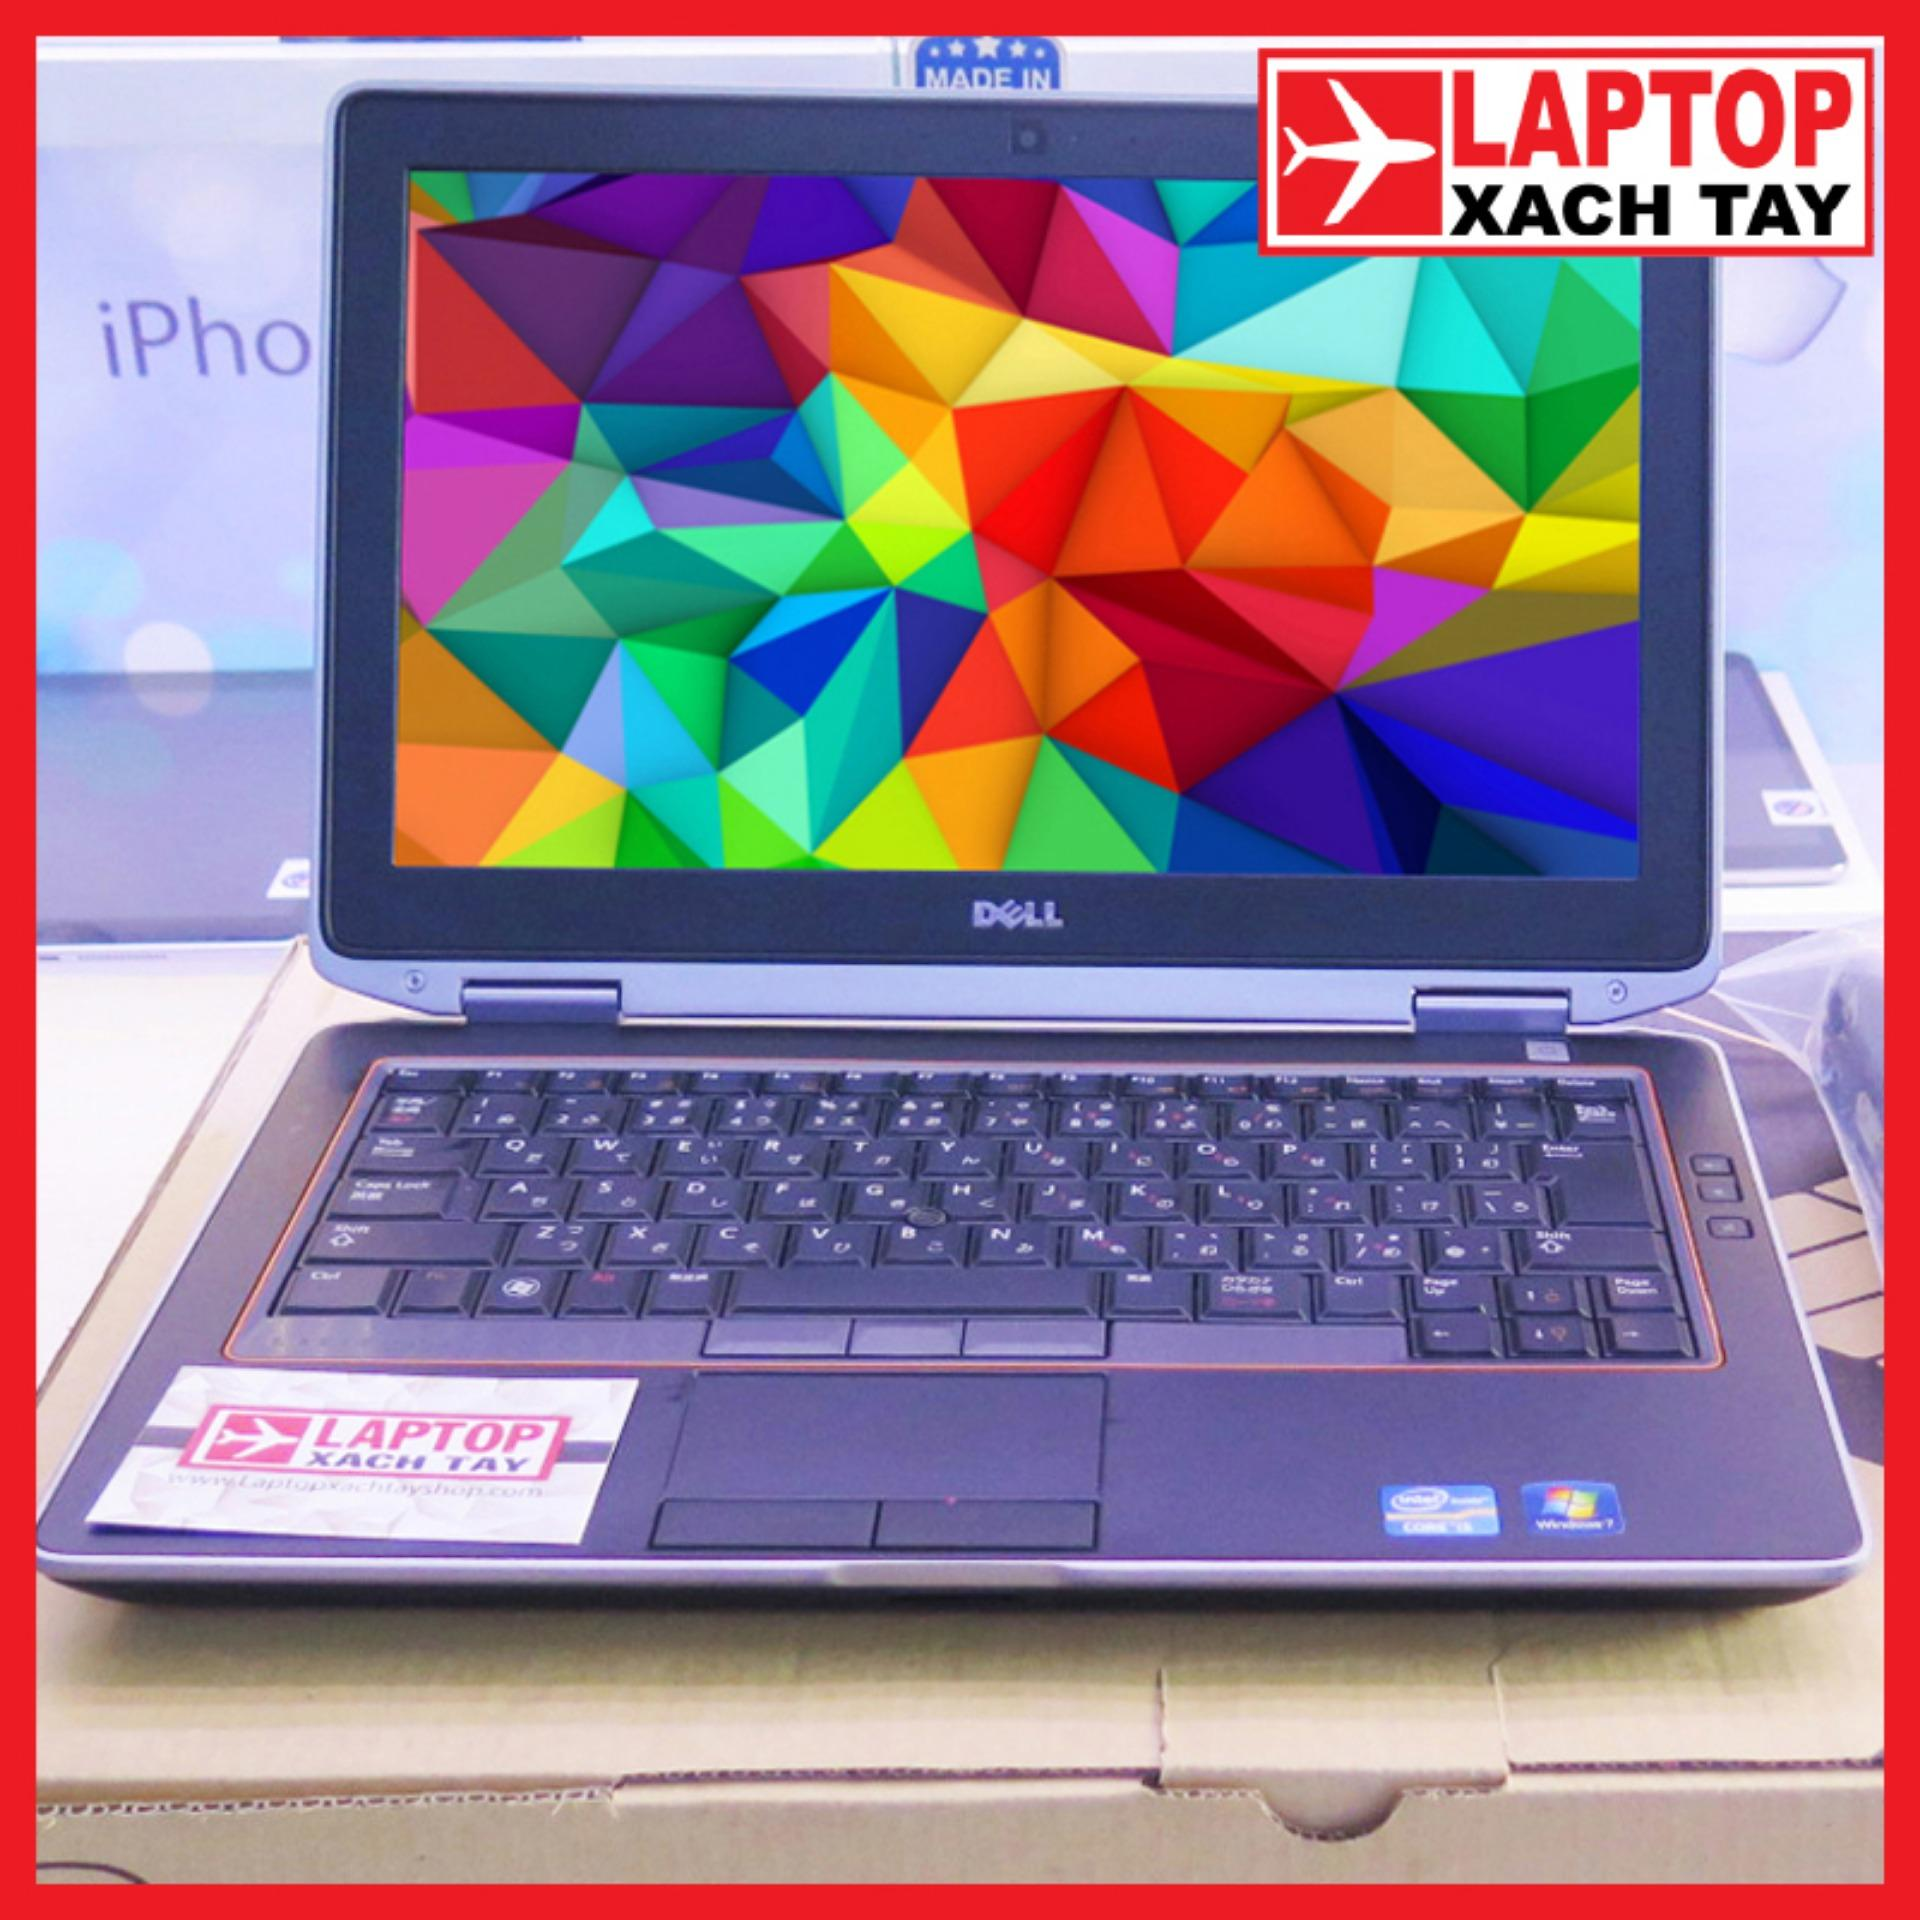 Laptop Dell Latitude E6320 i7/4/500 - Laptopxachtayshop